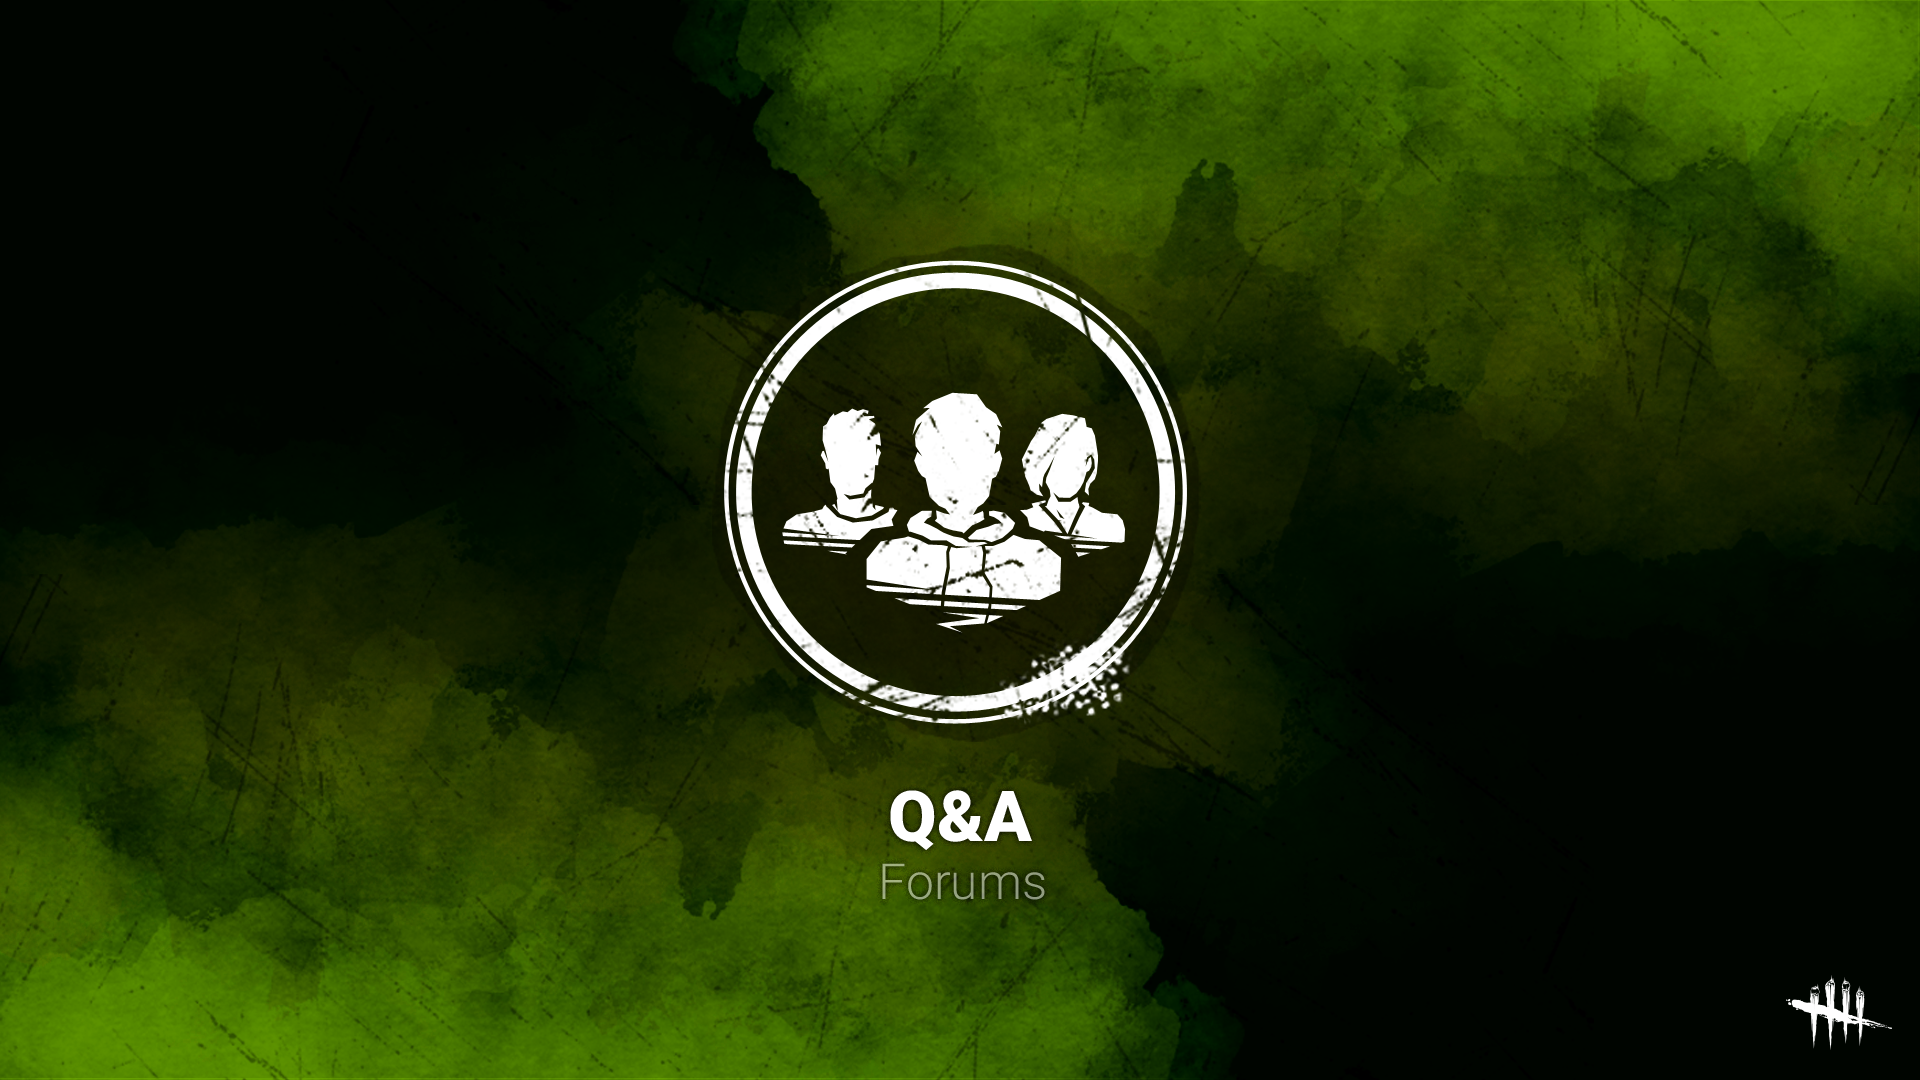 DBD_Comm_Template_1920x1080_Q&A_Forums.png